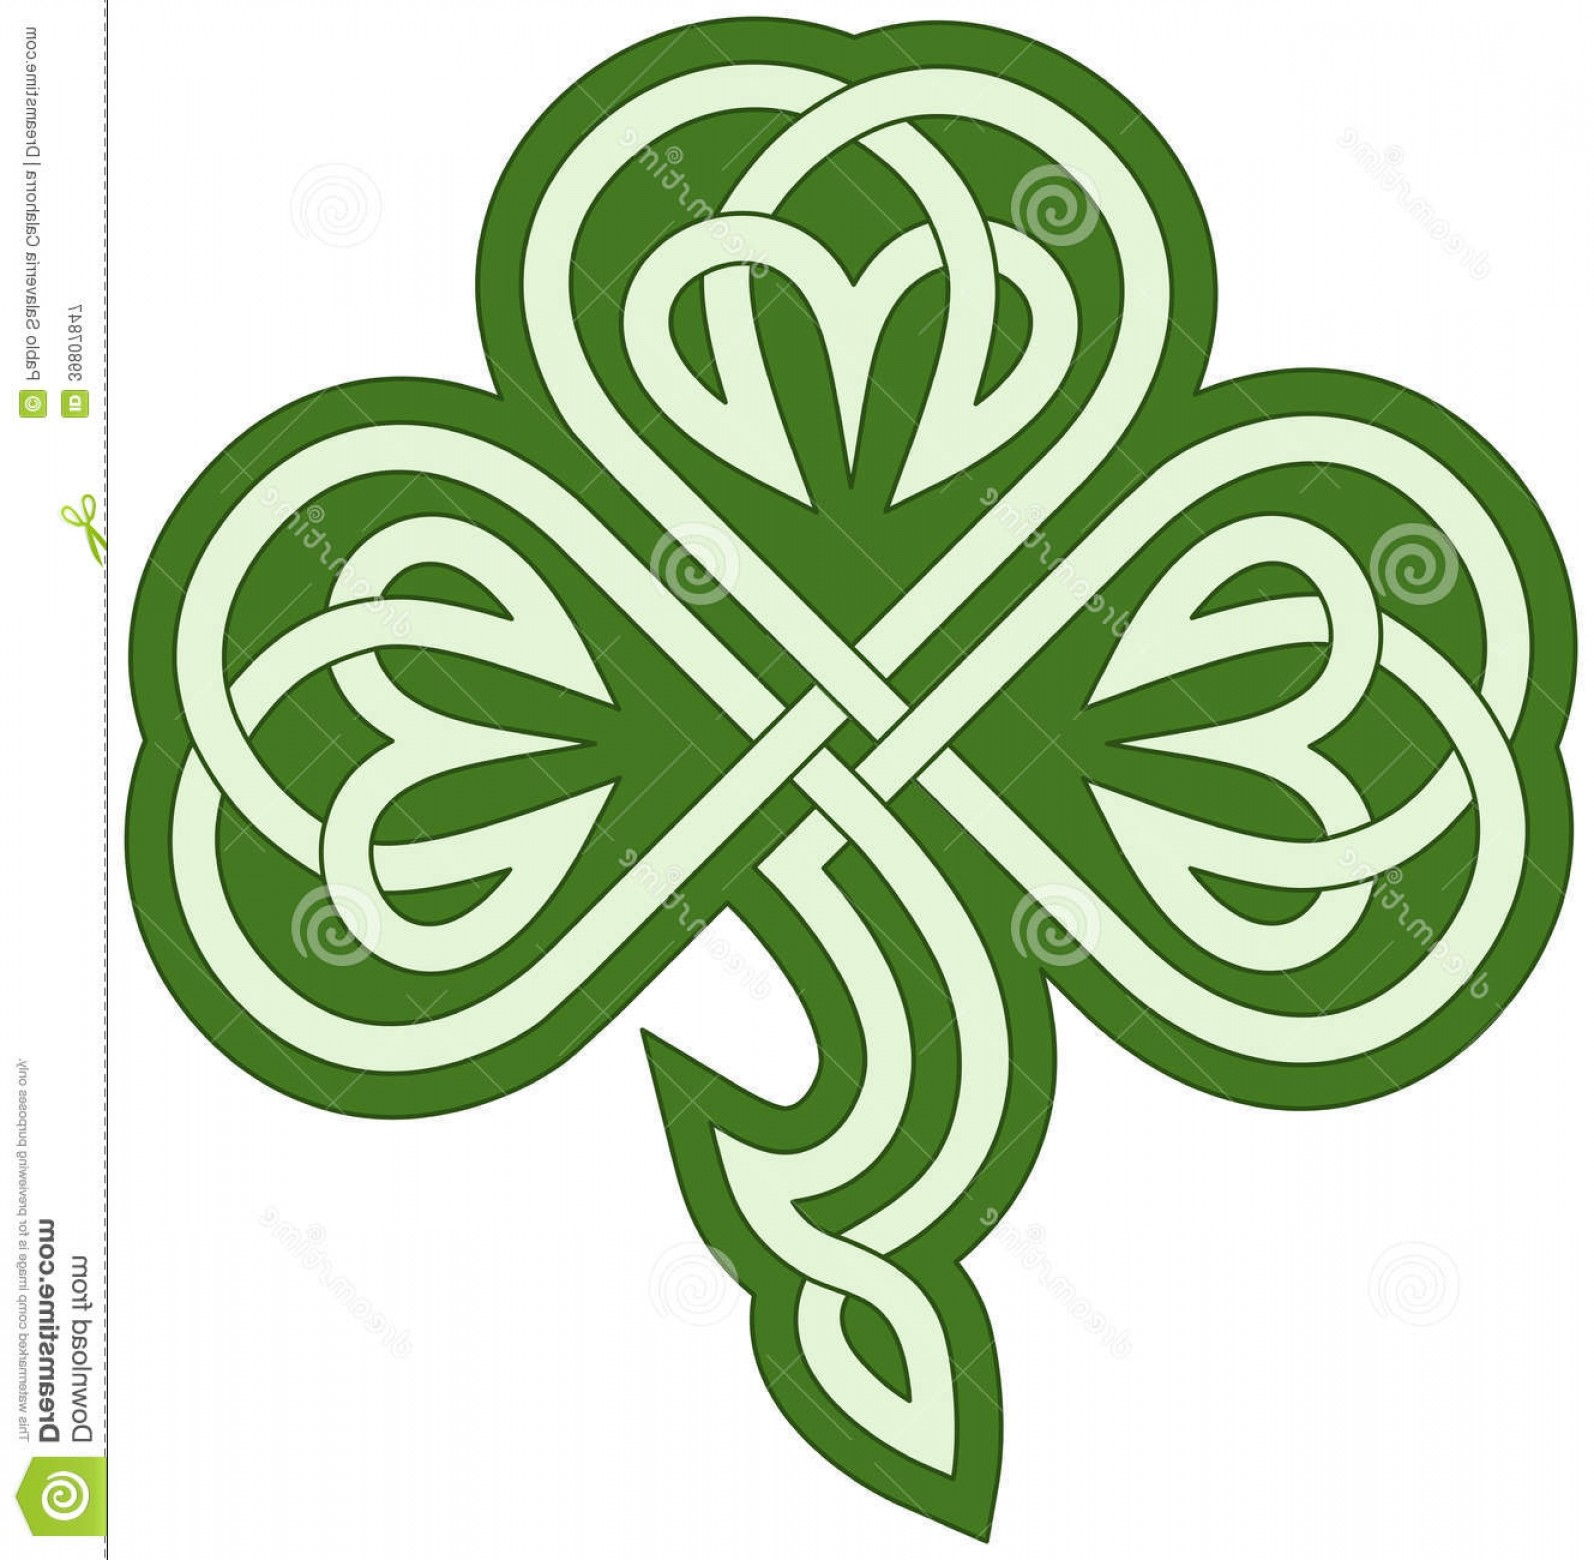 Four Leaf Clover Vector Art Black And White: Royalty Free Stock Photography Celtic Clover Vector Drawing Tribal Image